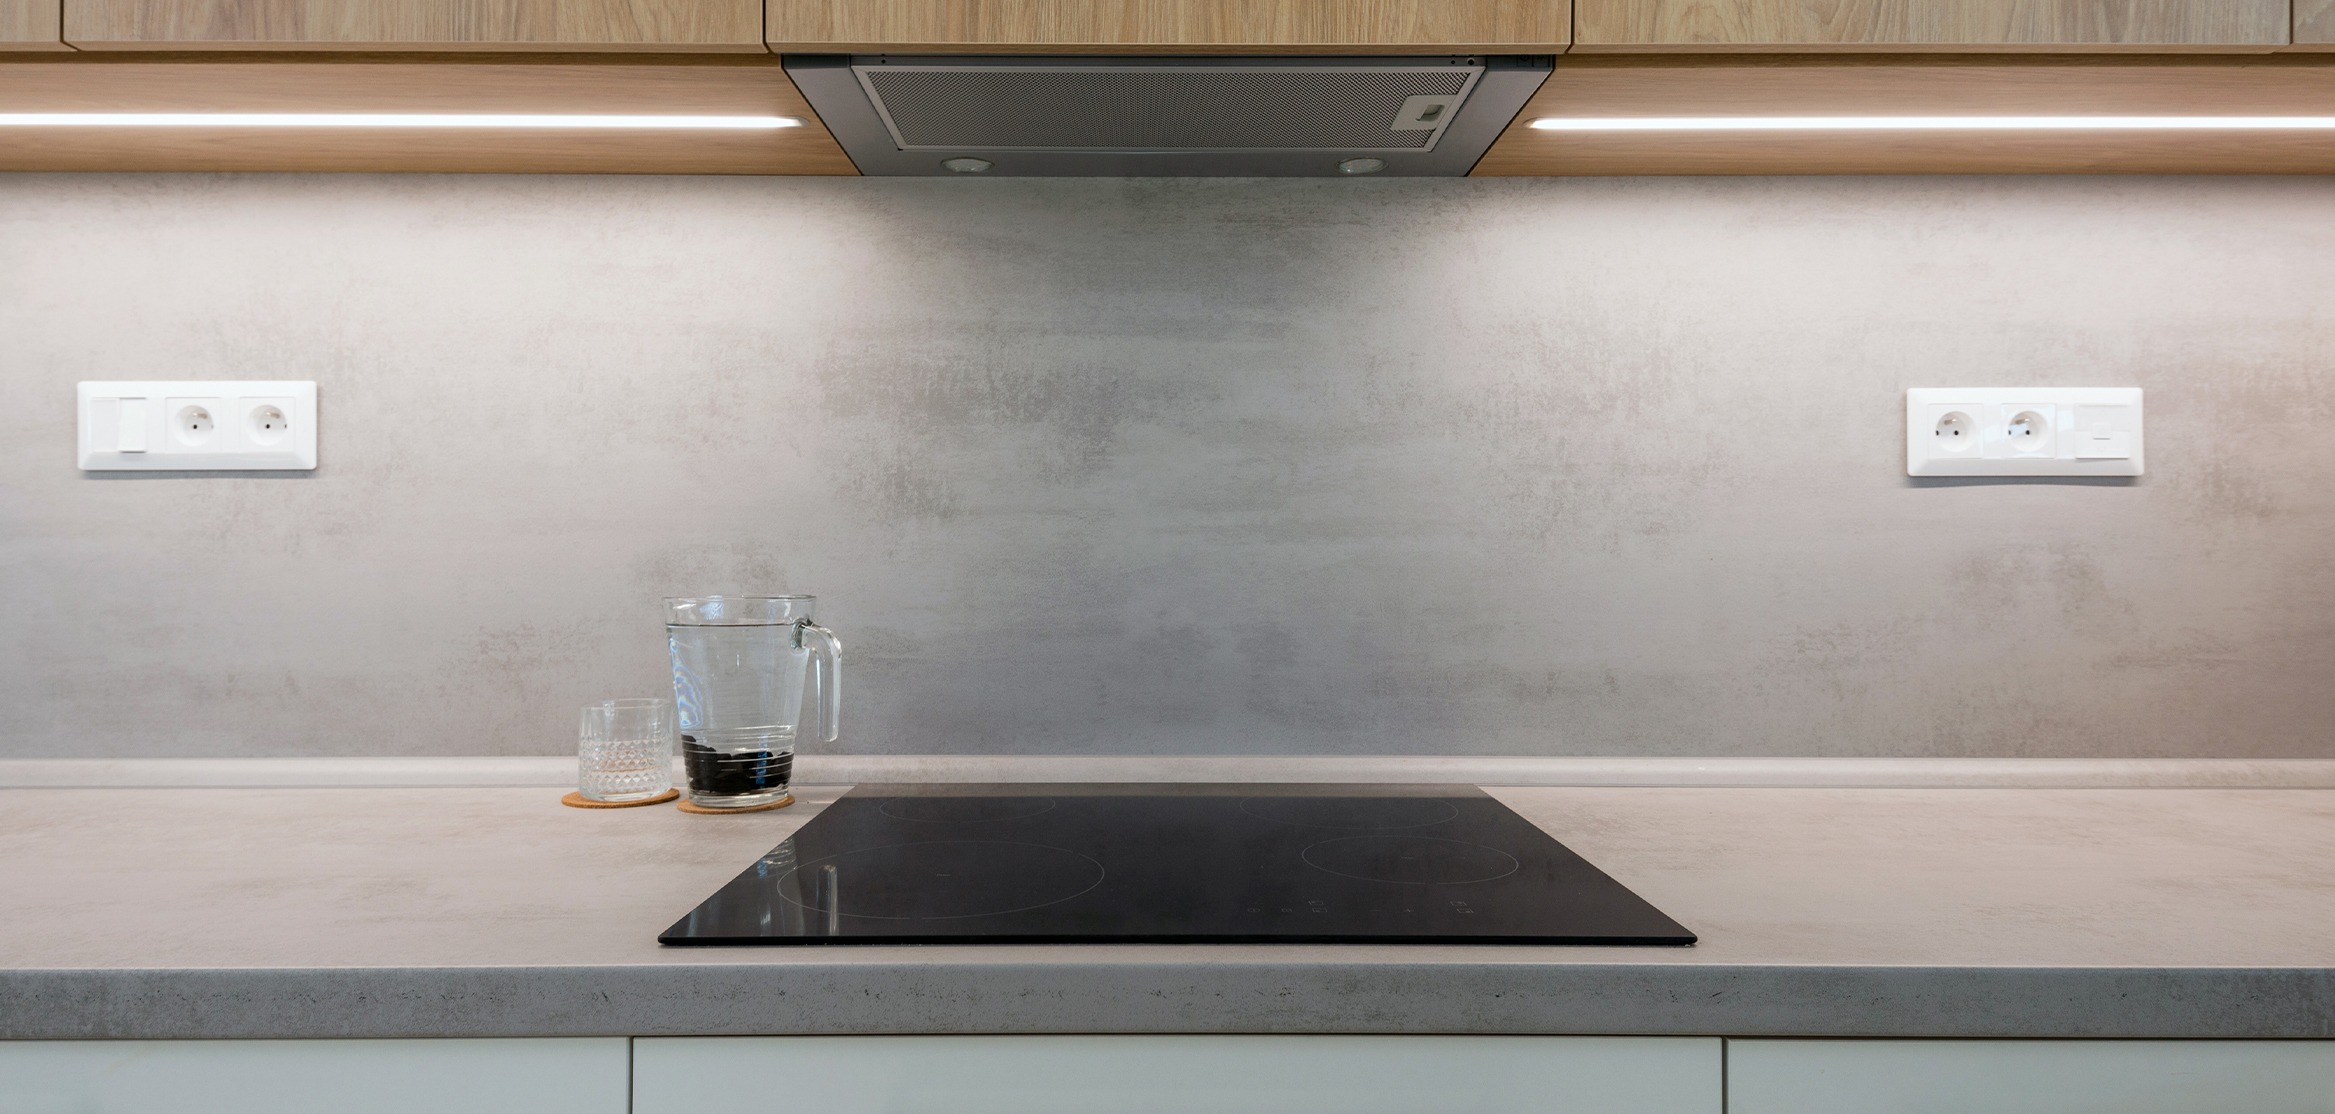 Induction Cooktop Installation